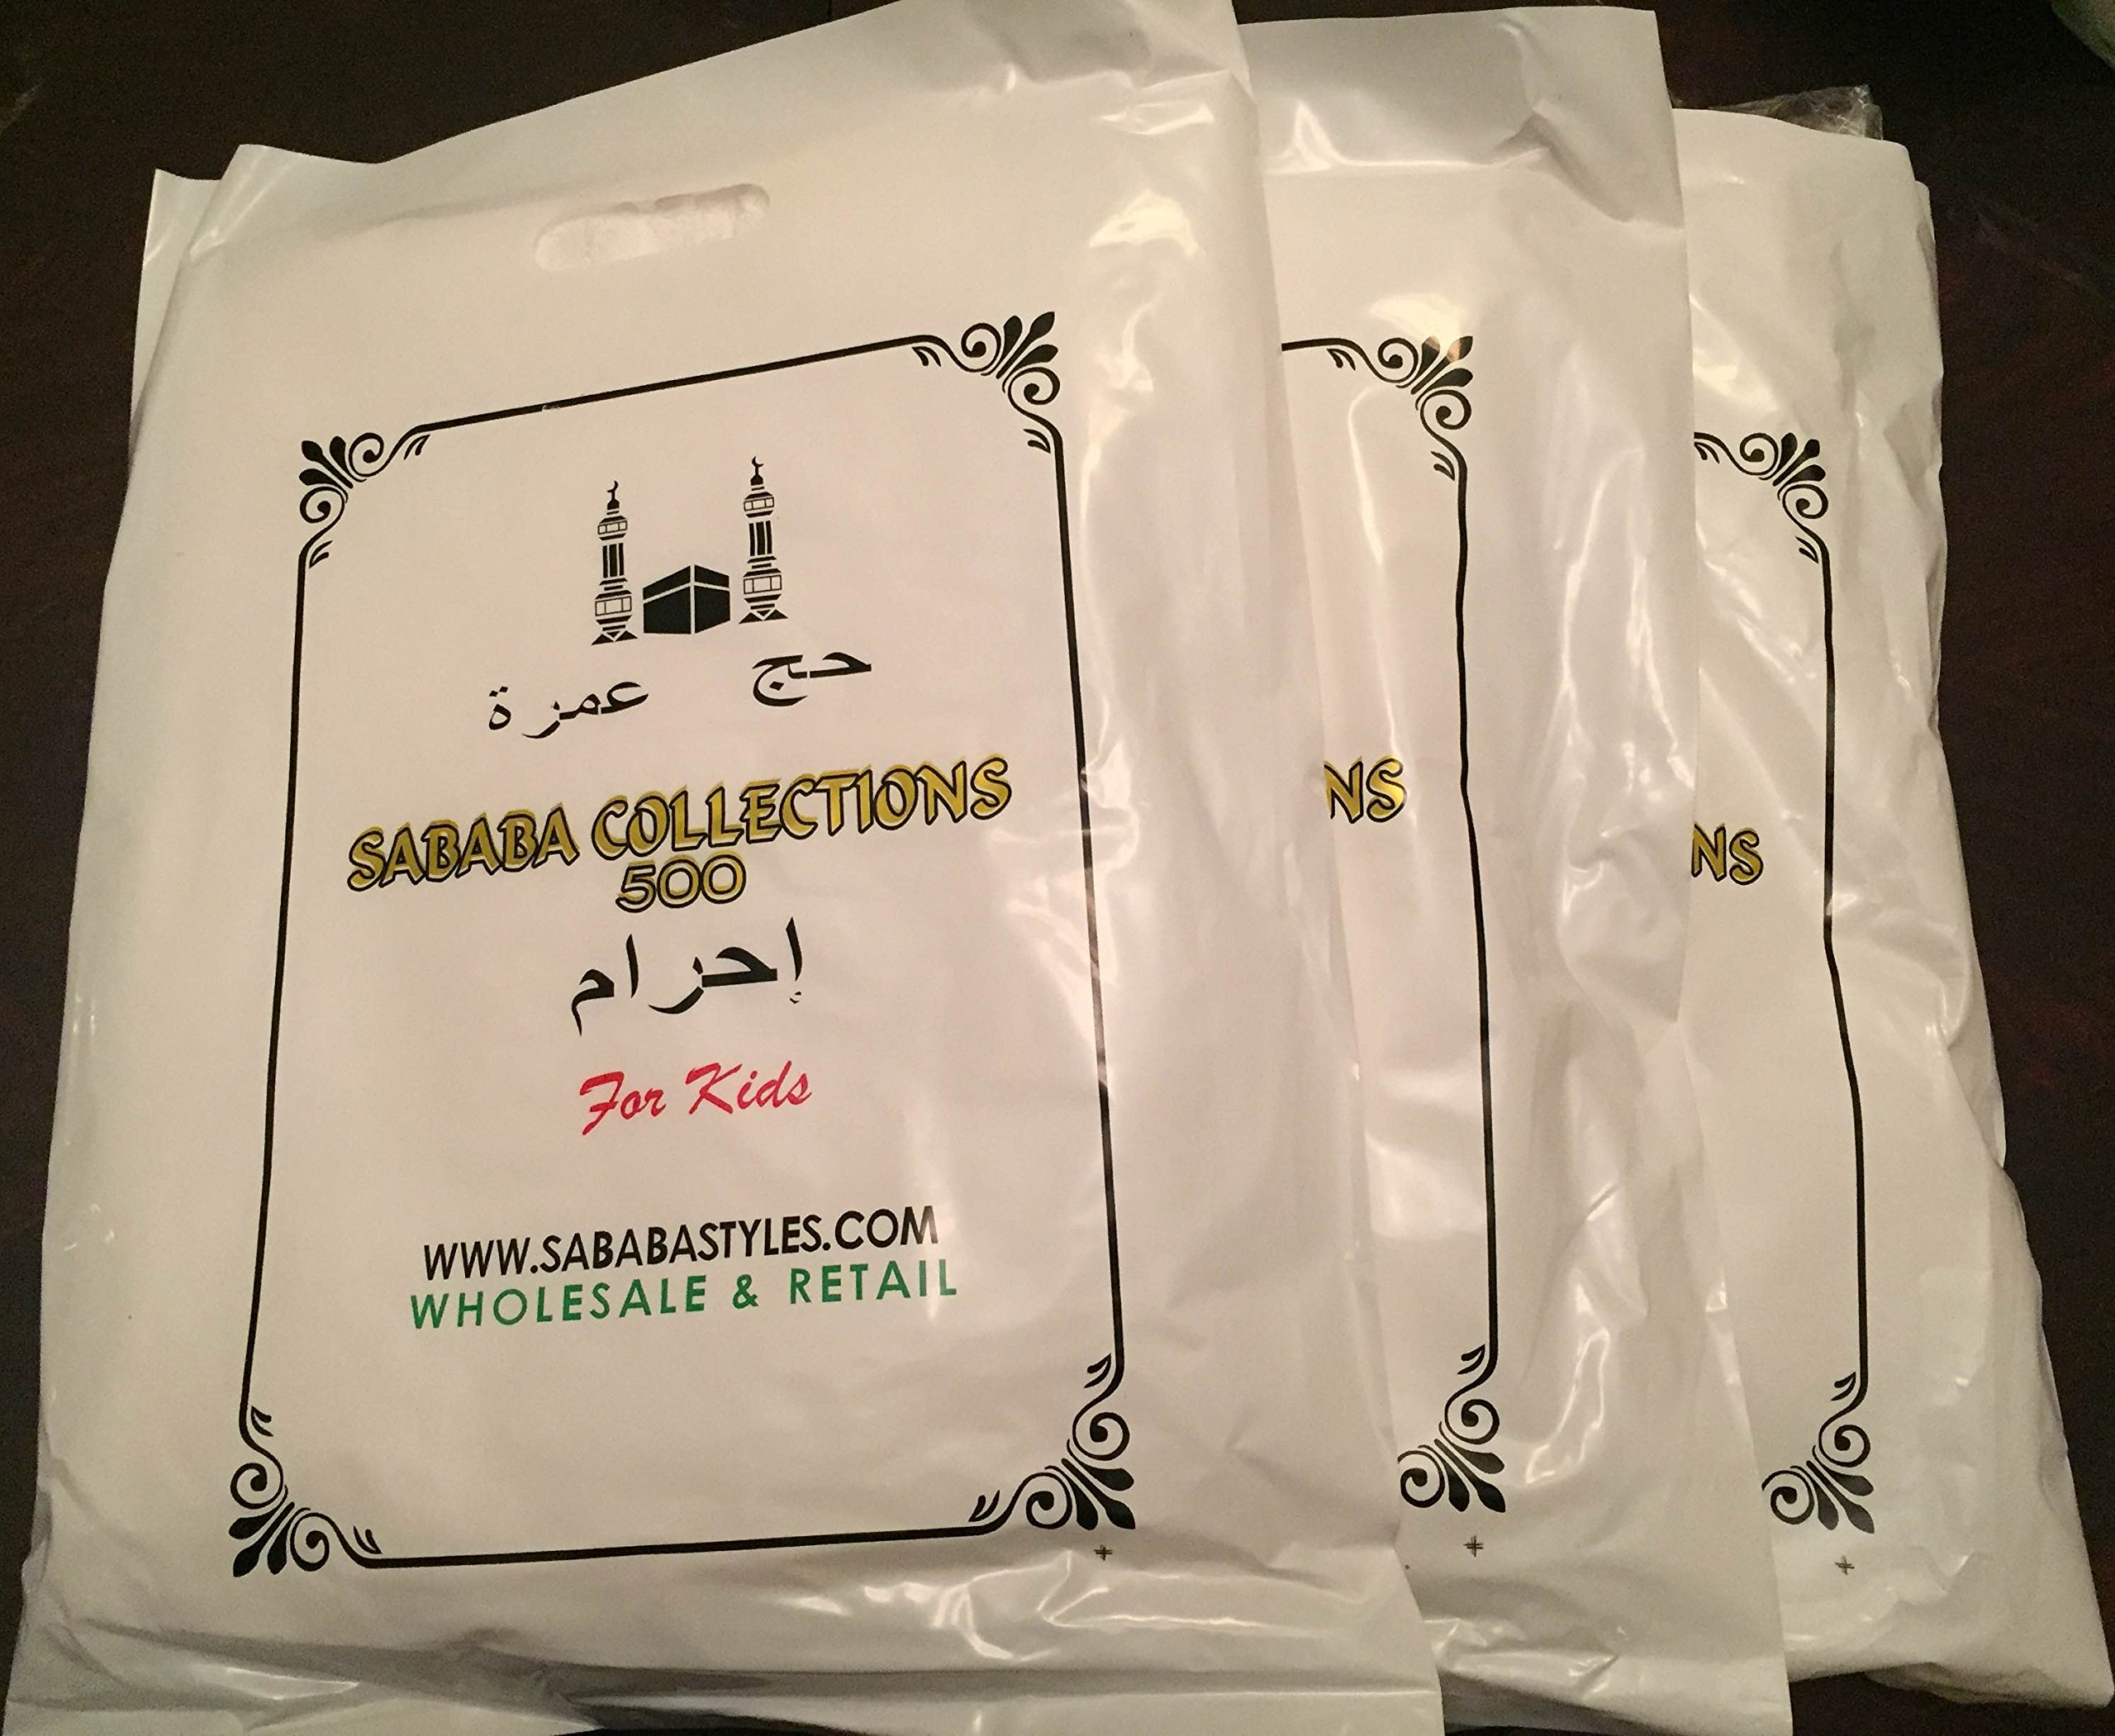 10 SET LOT SALE-Ihram for kids 2 PCS OF WHITE TOWEL CLOTH/SOFT/ABSORBENT/GOOD QUALITY/HAJJ AND UMRAH (60''x30'') wt 500 gms/10 PCS BUNDLE SOLD AND SHIPPED BY SHERIFFSONCORP. CONTACT FOR WHOLESALE